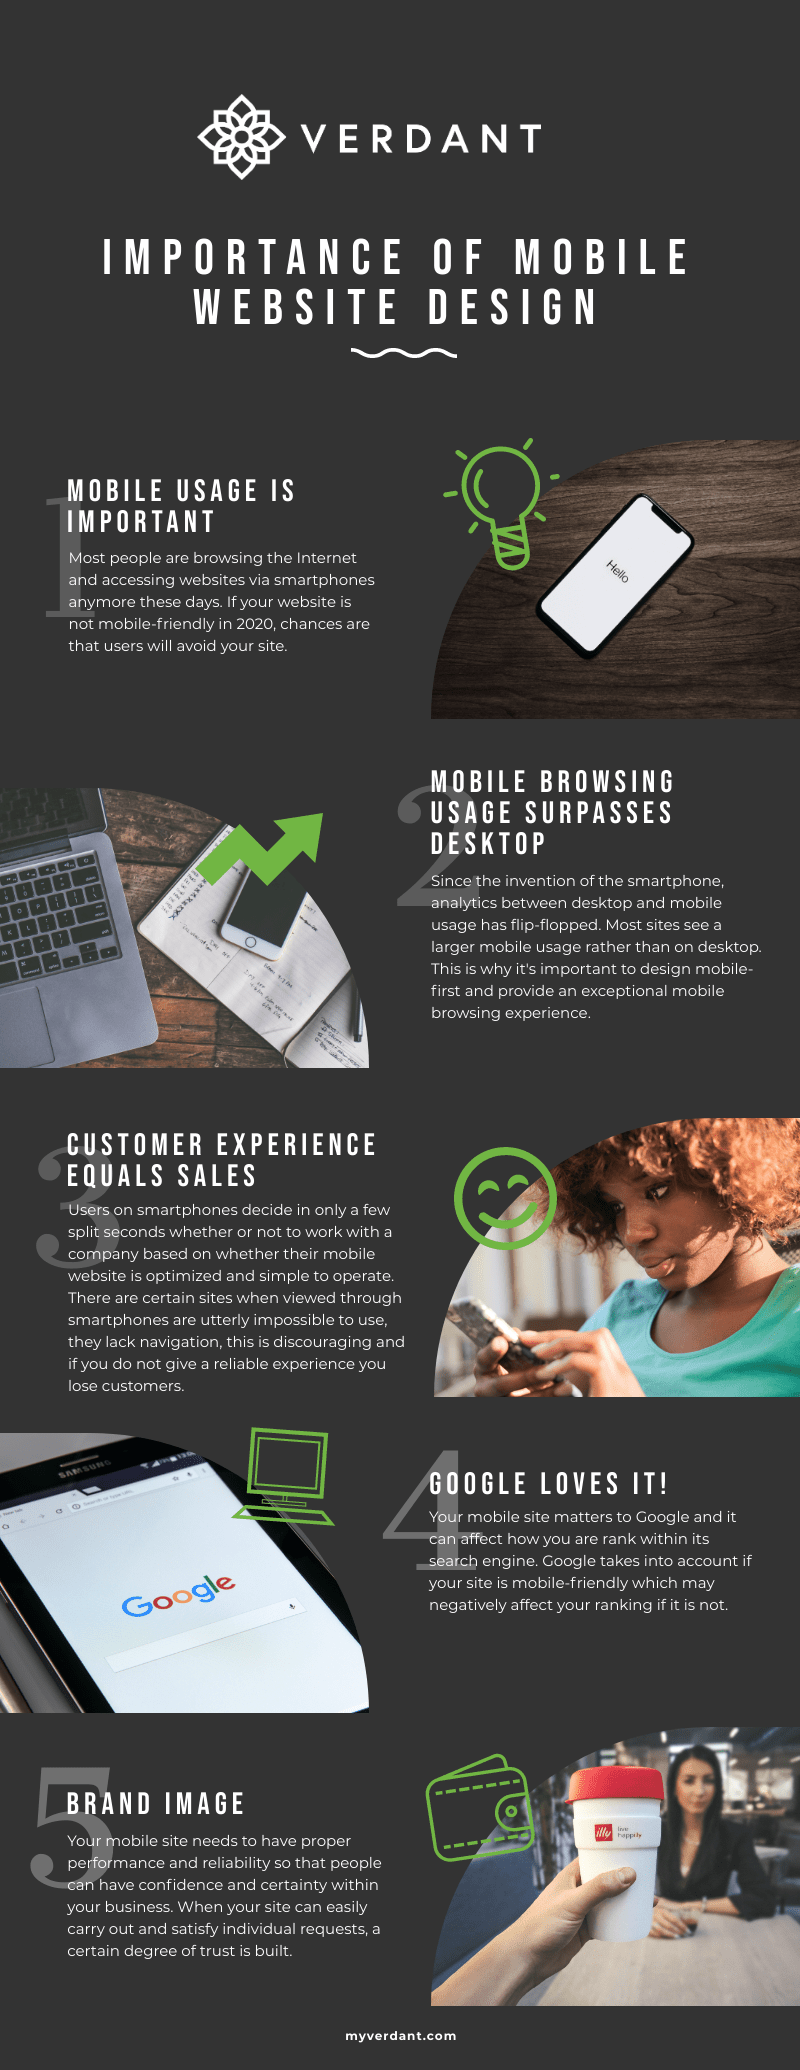 The importance of mobile website design